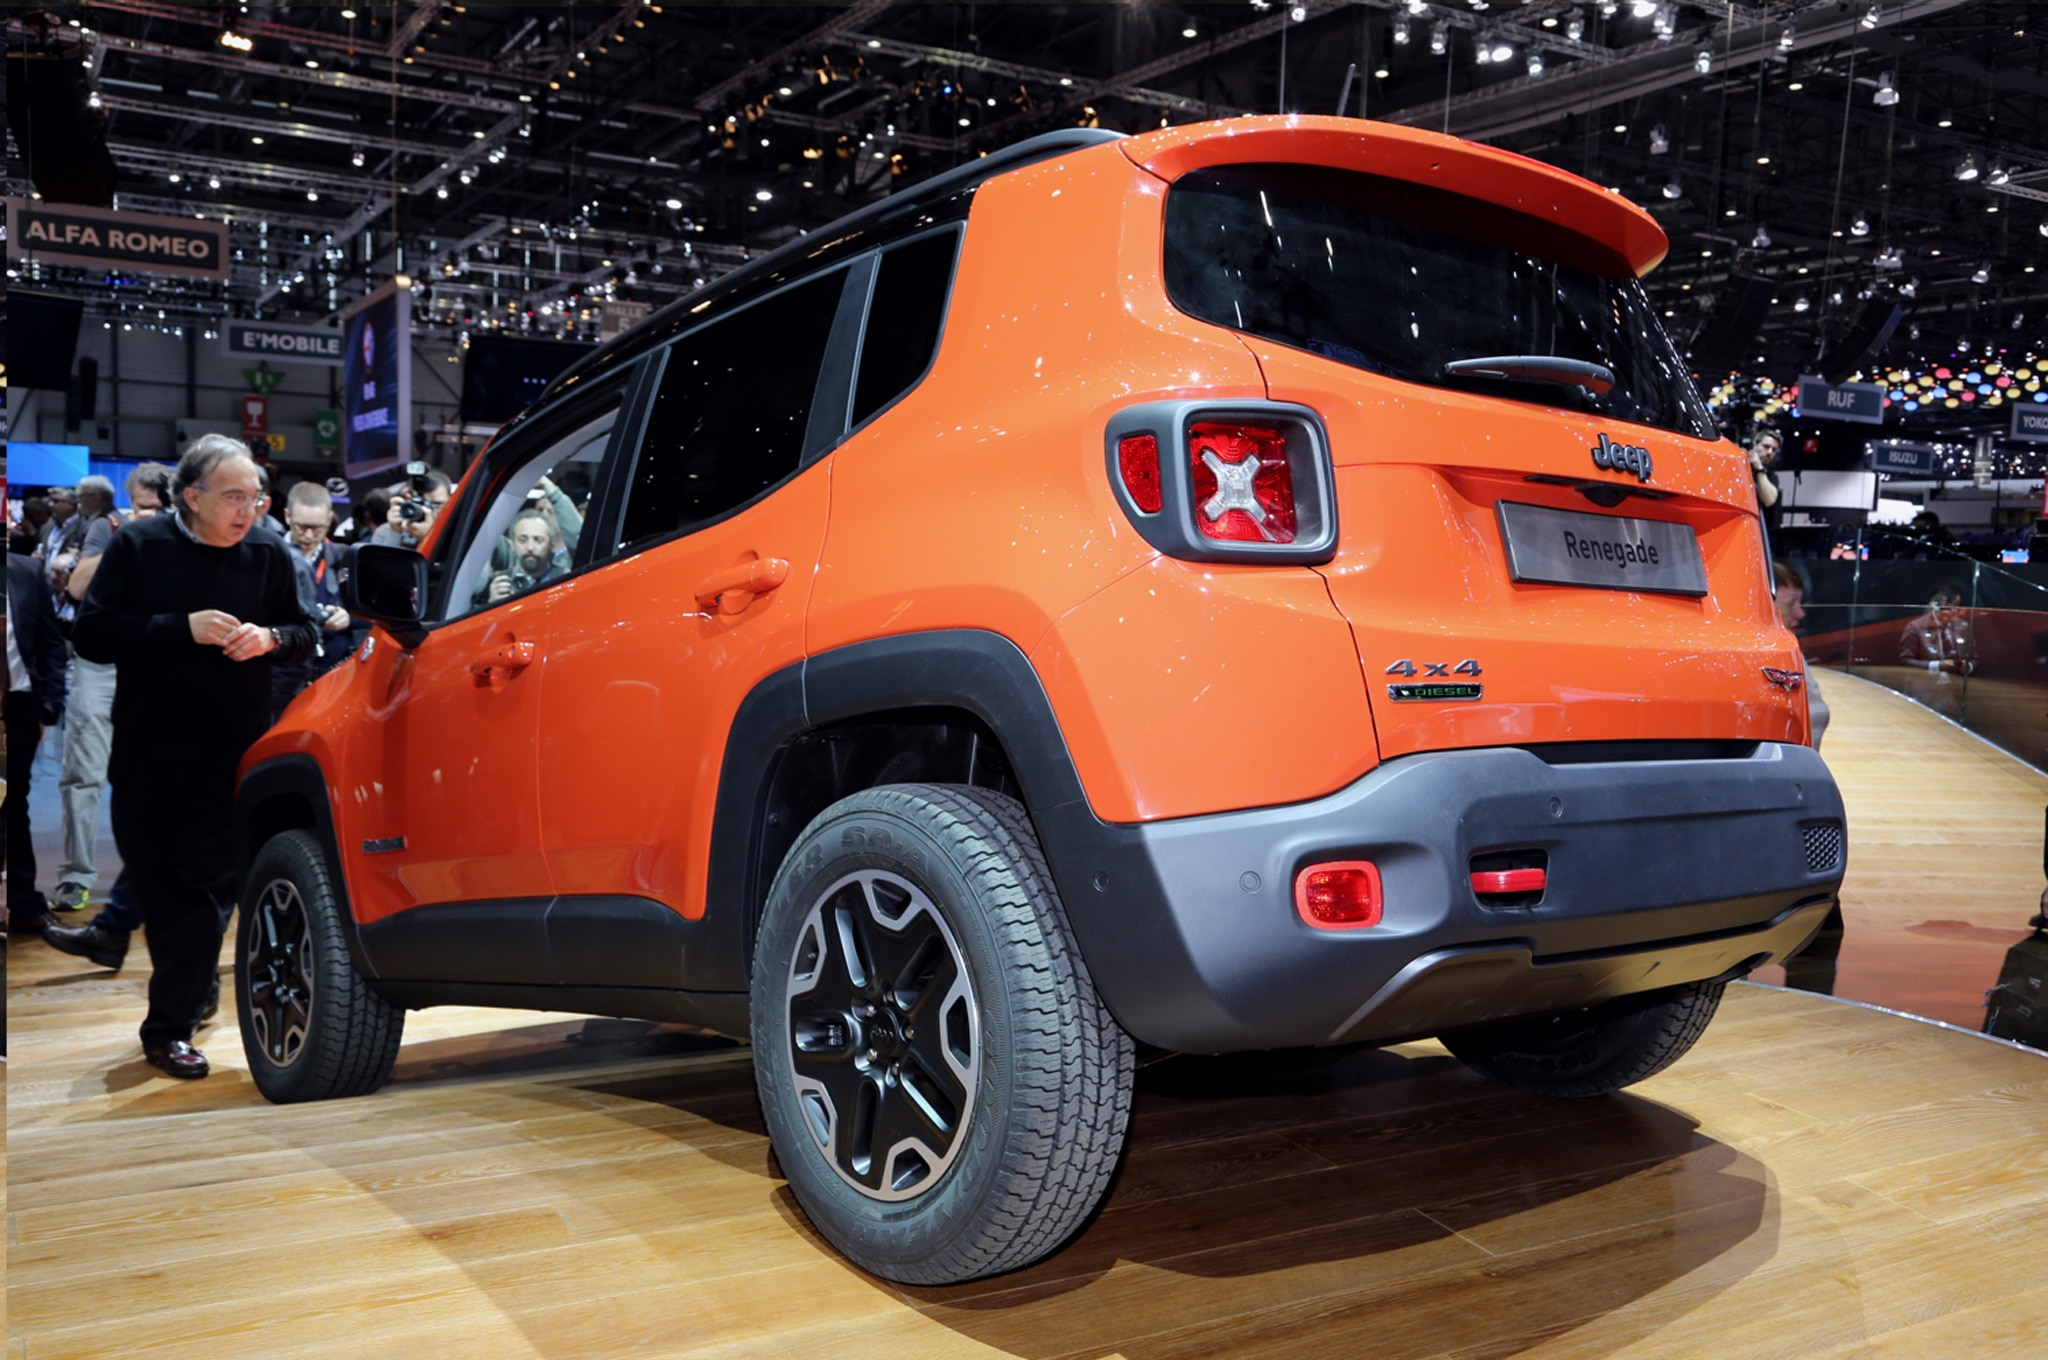 2015 Jeep Renegade Trailhawk show floor rear side view from drivers